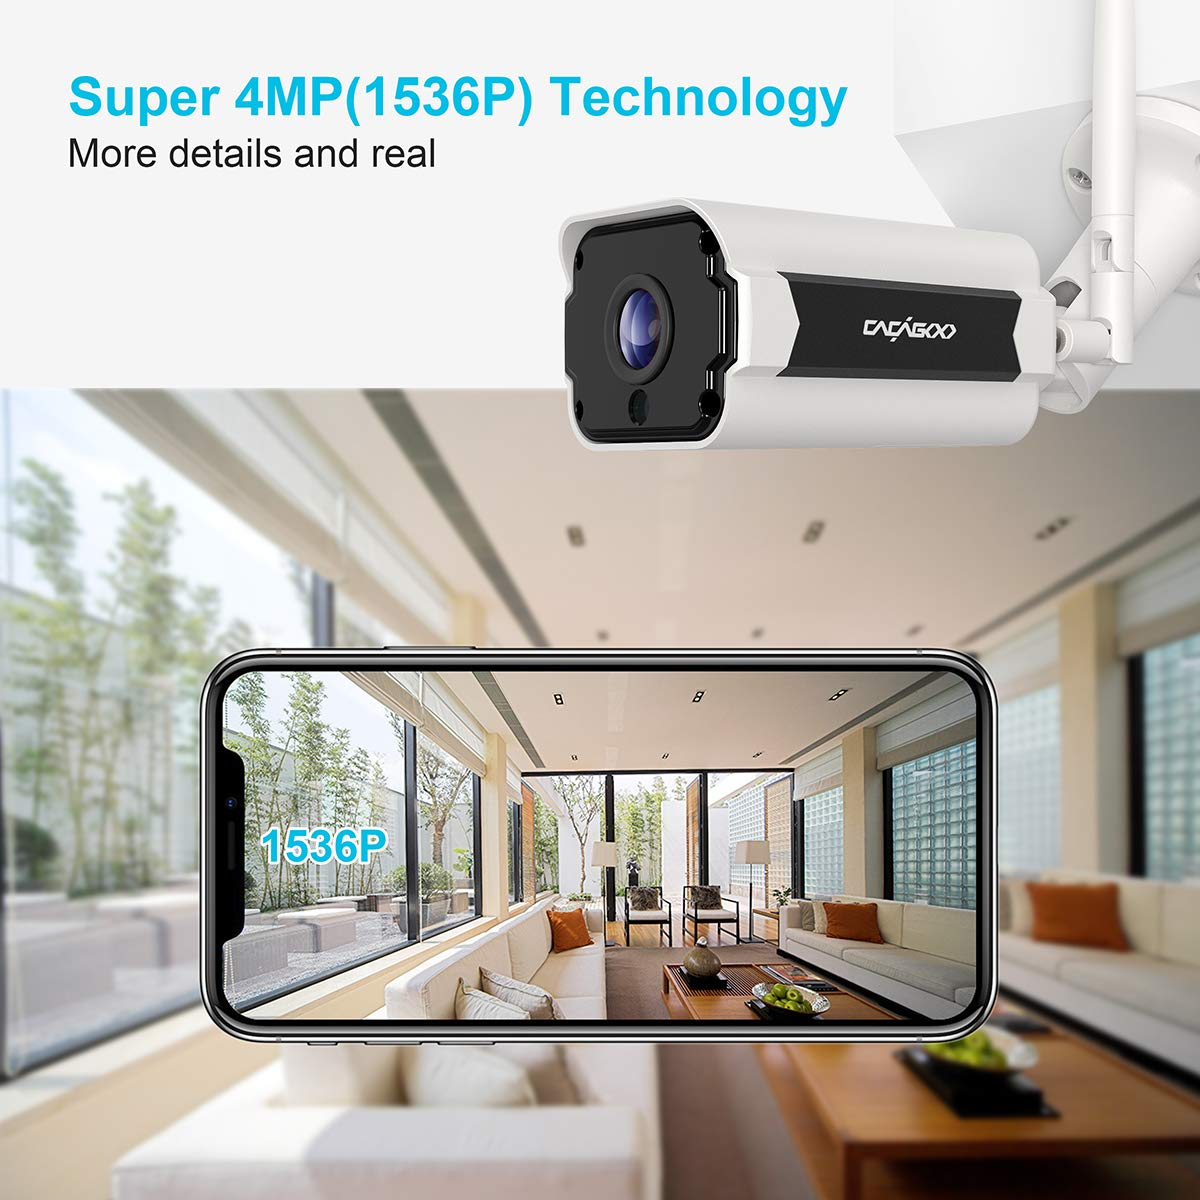 CACAGOO Outdoor Security Camera, 1536P 4MP Wireless WiFi Outdoor Camera,  IP66 Weatherproof, Motion Detection, MicroSD Recording, ONVIF Supported,